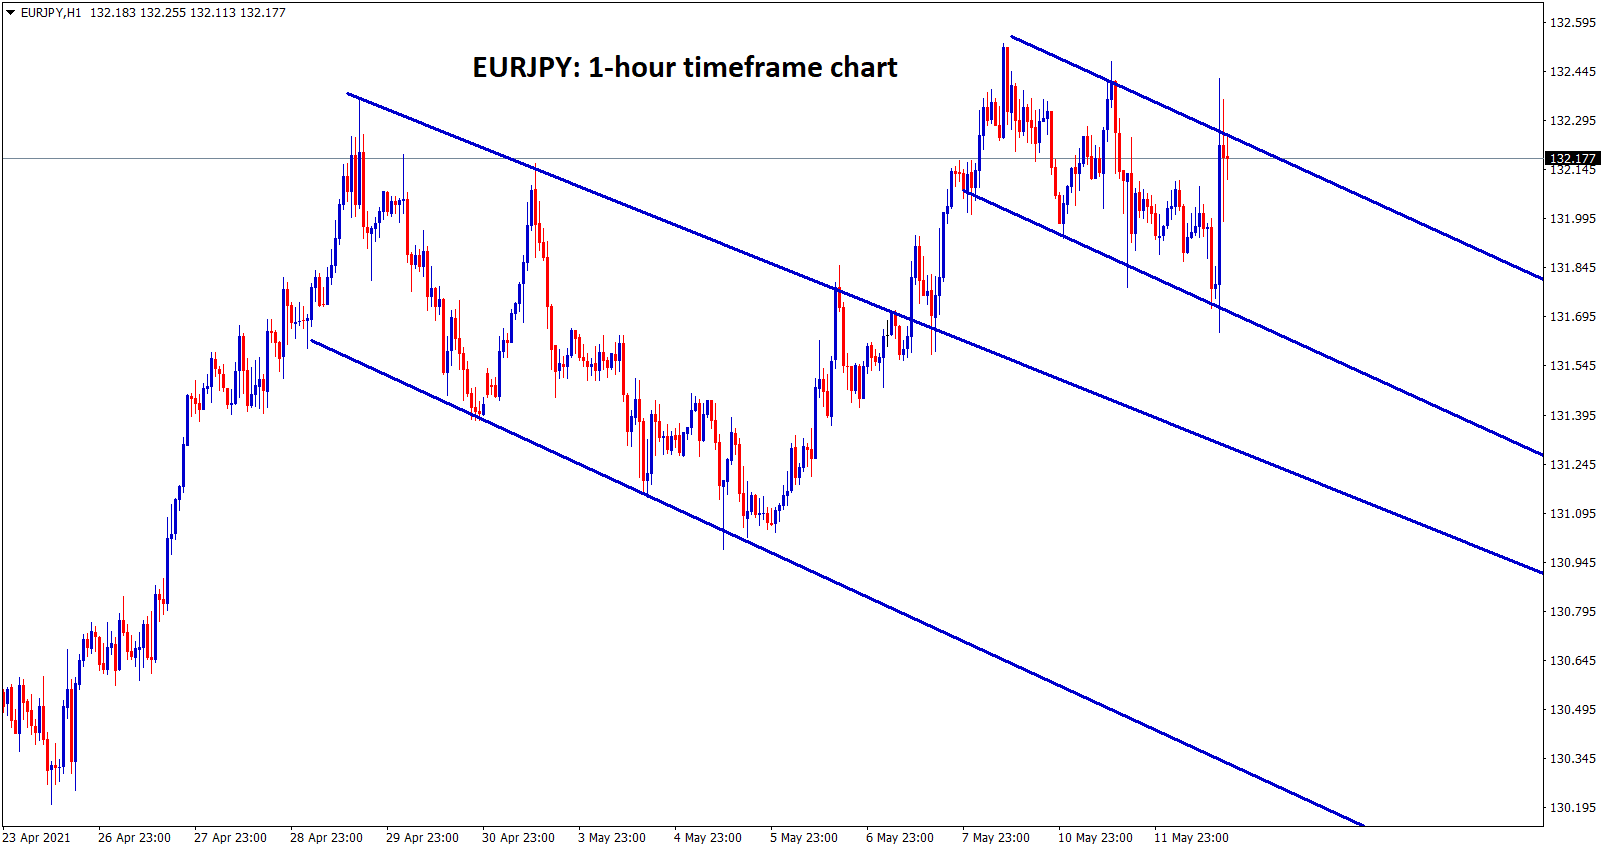 EURJPY formed a flag patterns in the h1 chart.